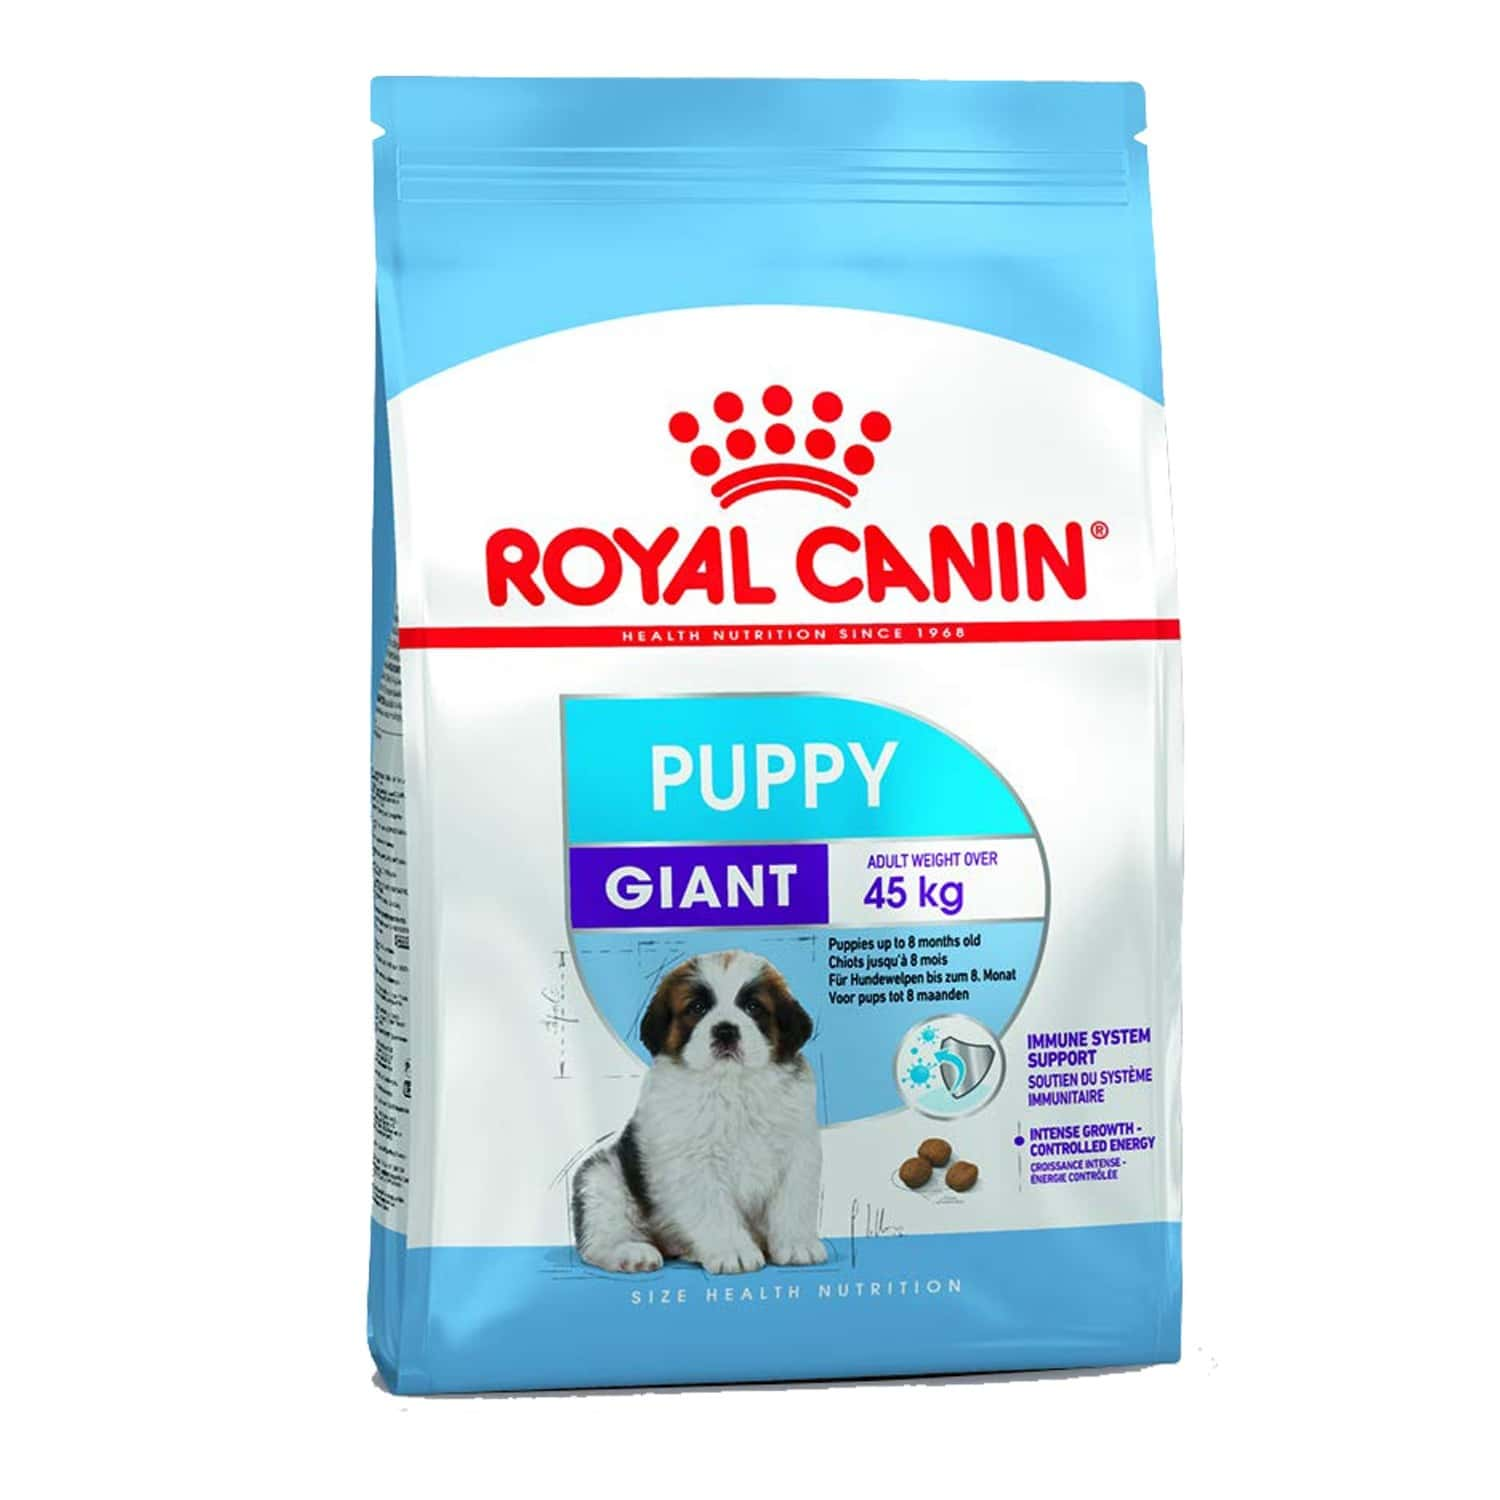 Royal Canin Puppy Giant - 3.5kg